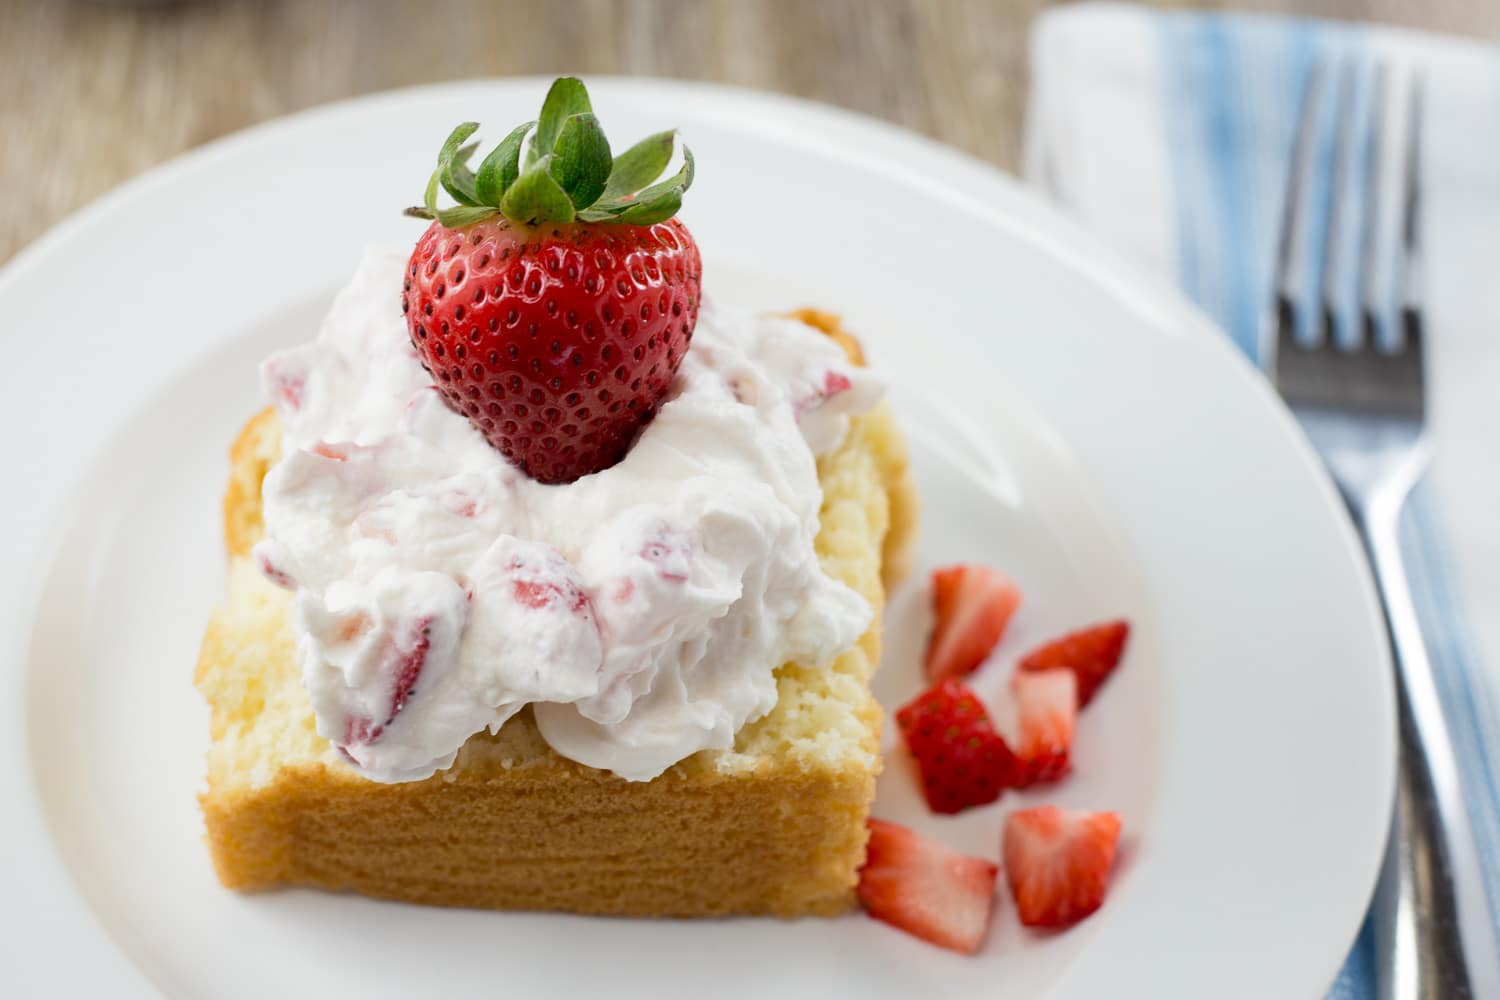 Strawberries and whipped cream is a 3 ingredient dessert that is simple and delicious! |artzyfoodie.com|